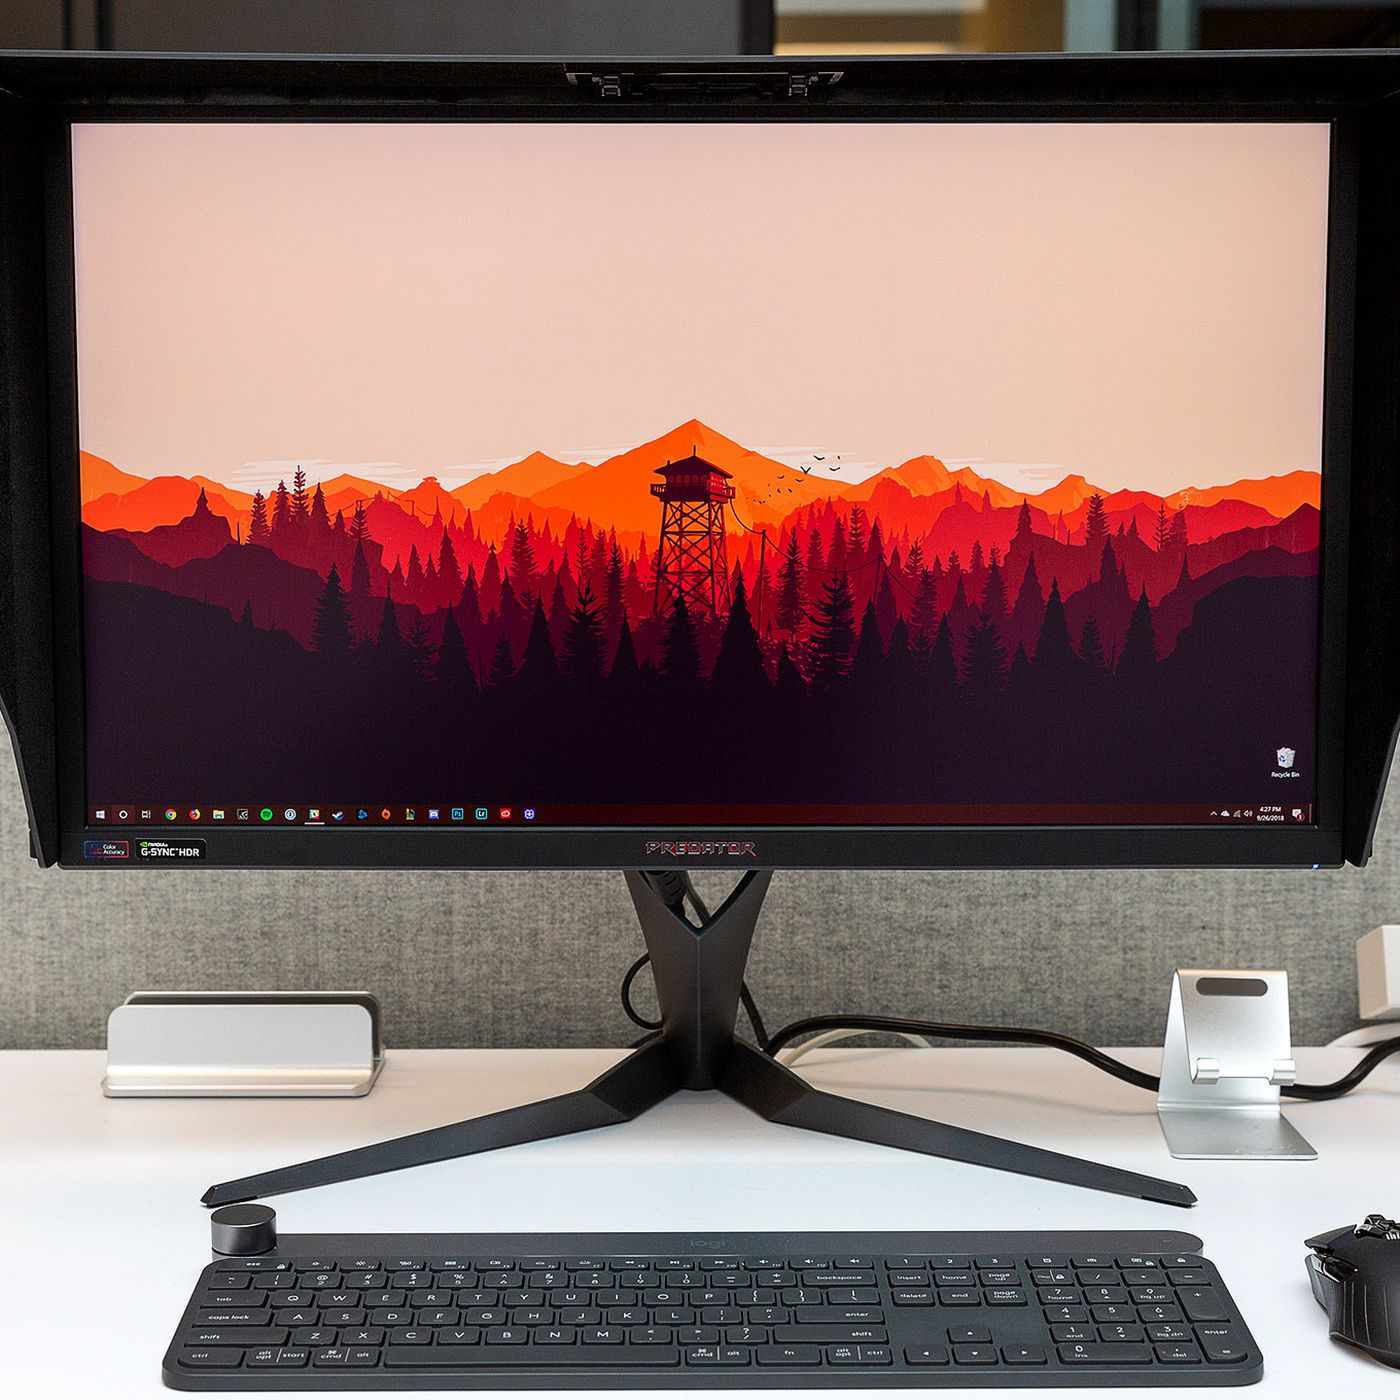 Acer Predator X27 review: today isn't ready for tomorrow's display